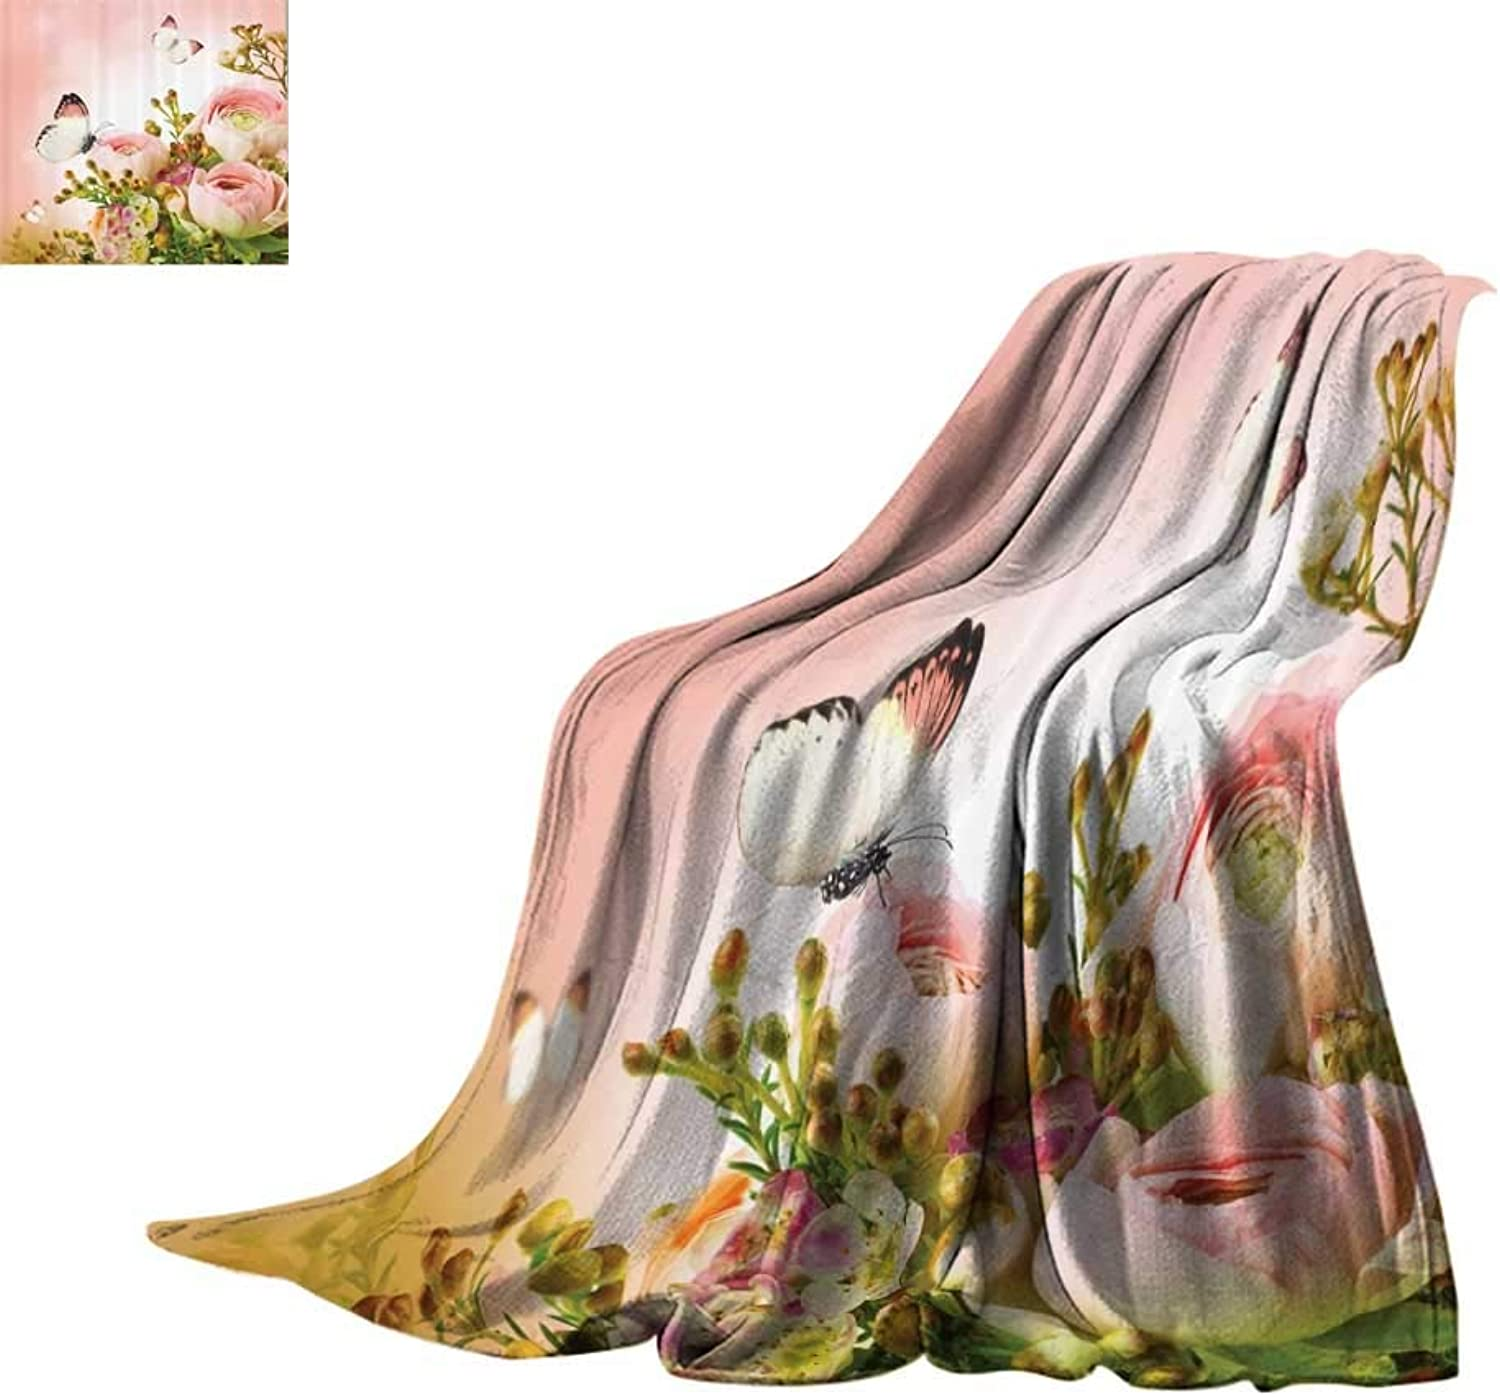 Cozy Flannel Blanket Floral Pink Decor,pinks and Flower Buds Leaves in Bouquet with Butterflies for Mothers Day Girls Print,Light Pink and Green Print Summer Quilt Comforter Bed or Couch 60 x35